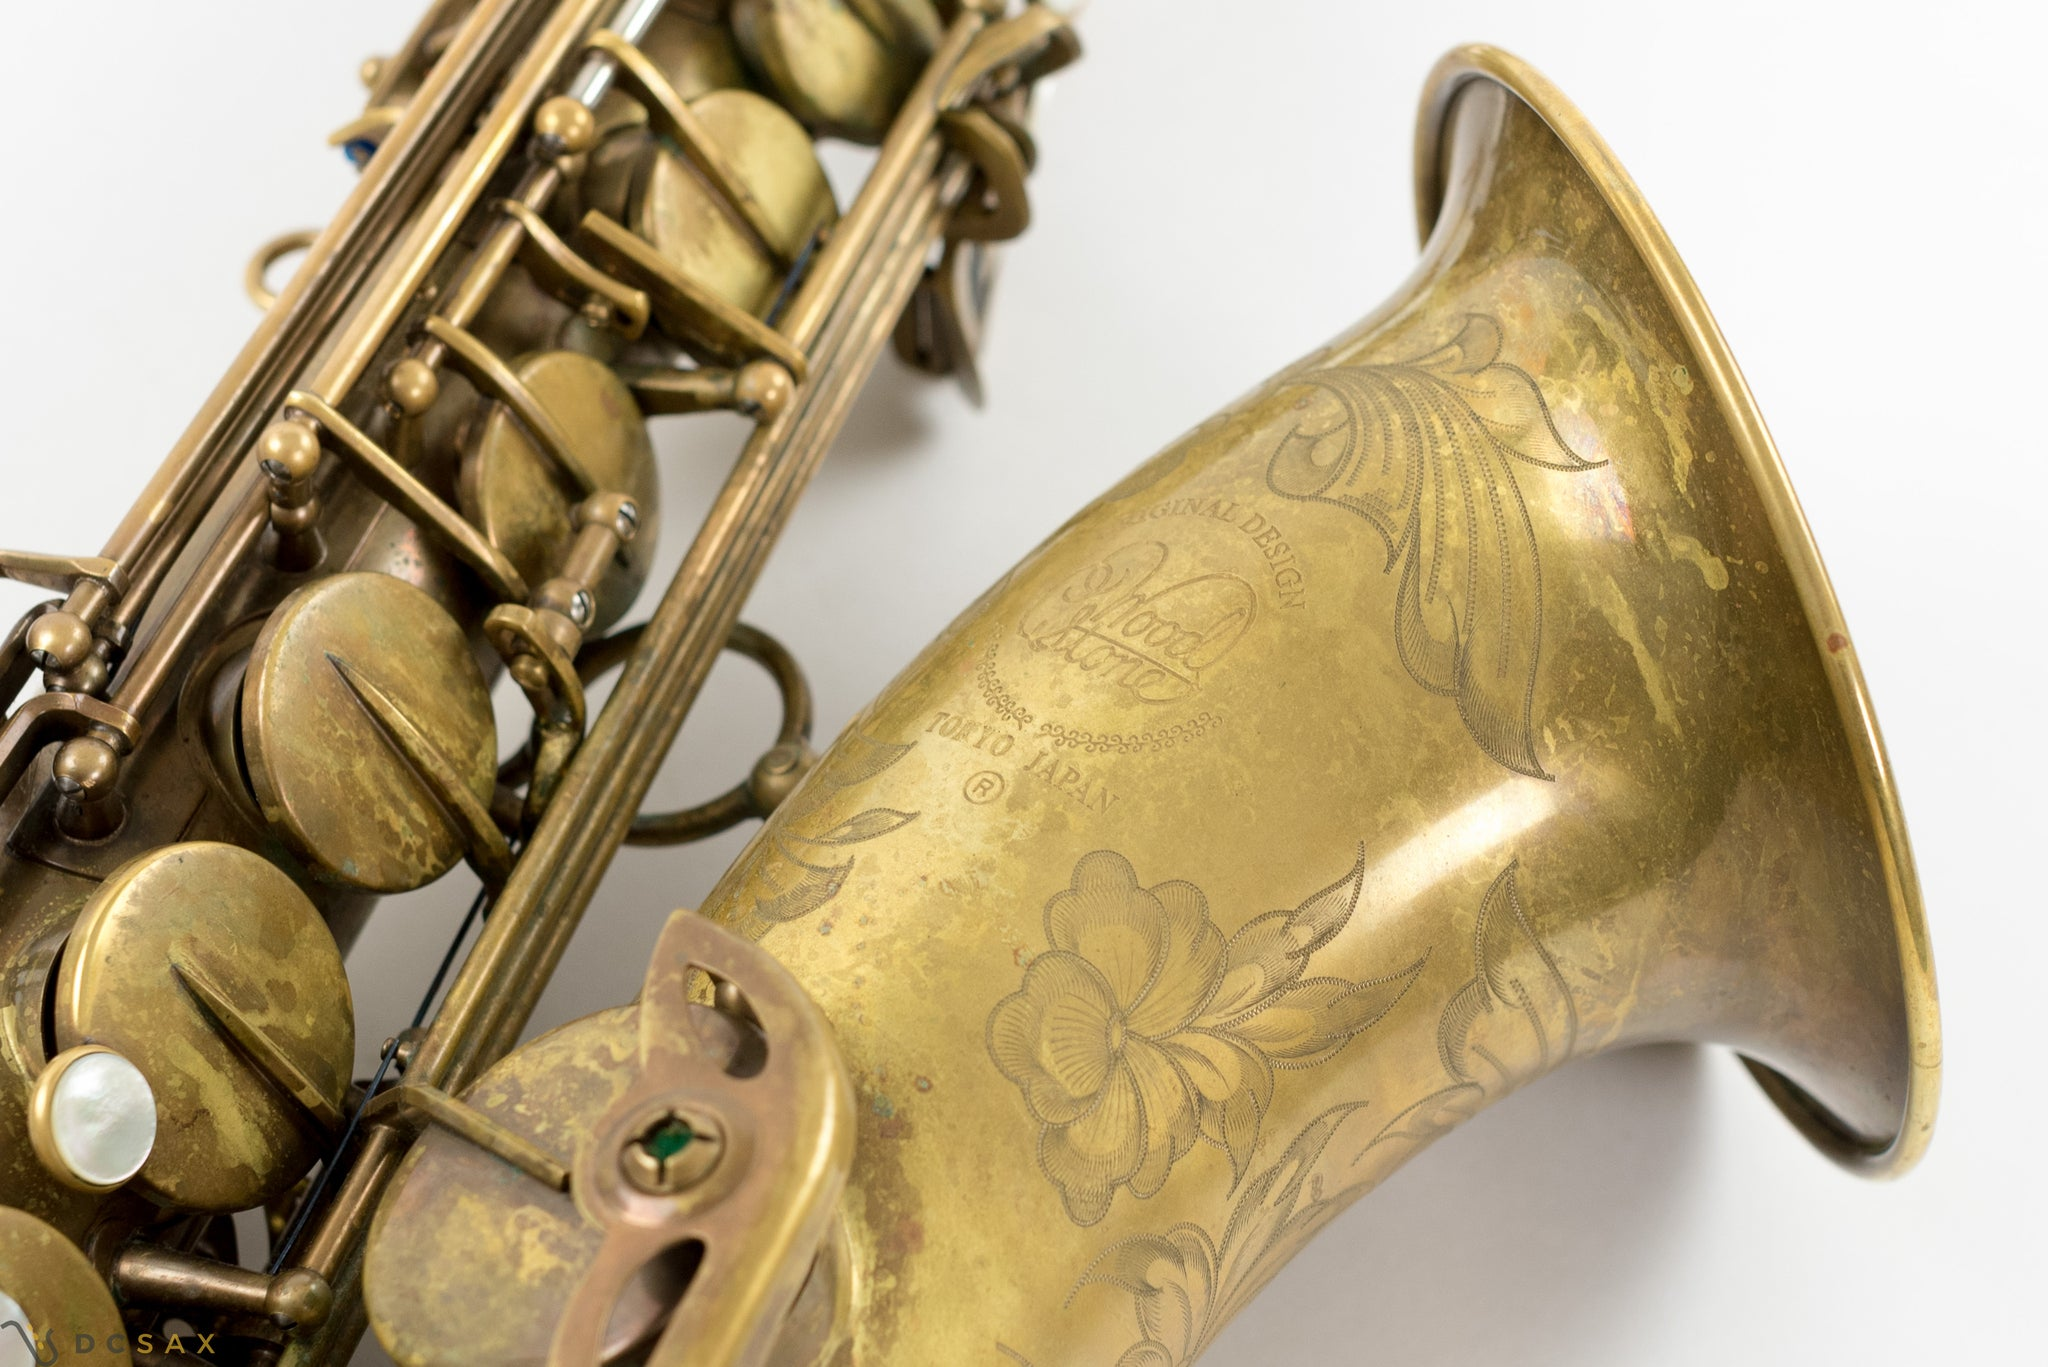 Ishimori Woodstone Tenor Saxophone, Near Mint Condition, Unlacquered Finish